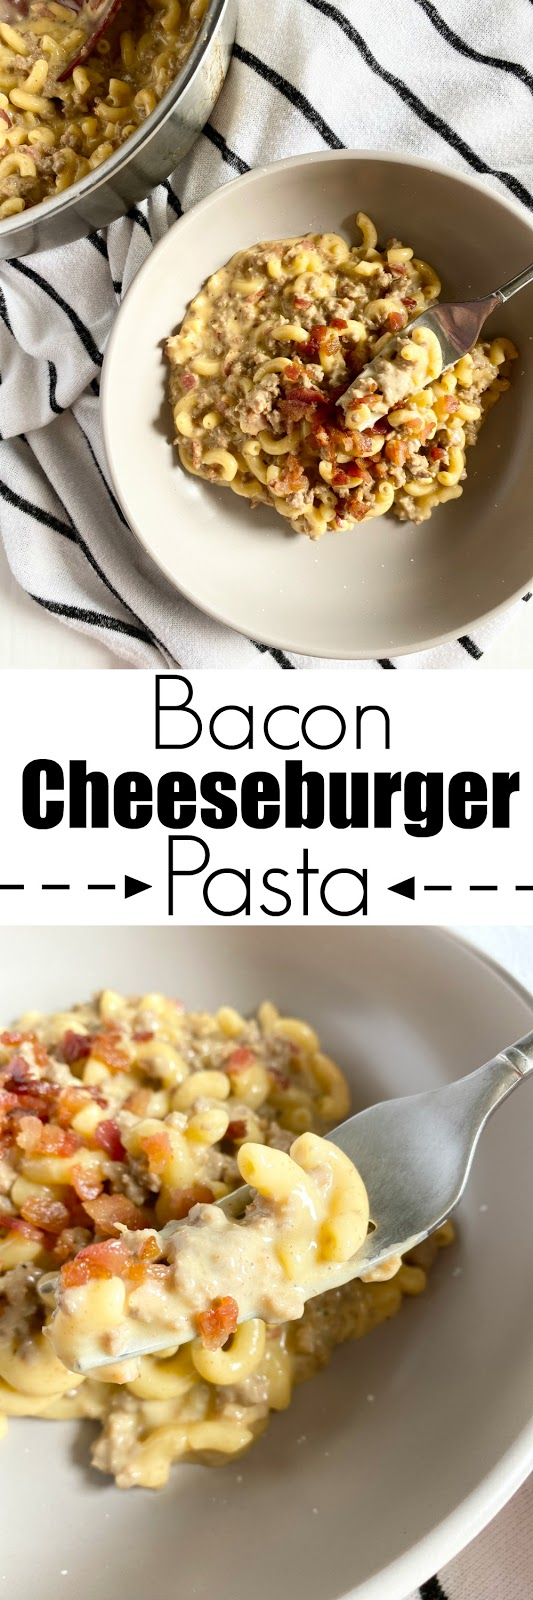 Bacon Cheeseburger Pasta #sweetsavoryeats